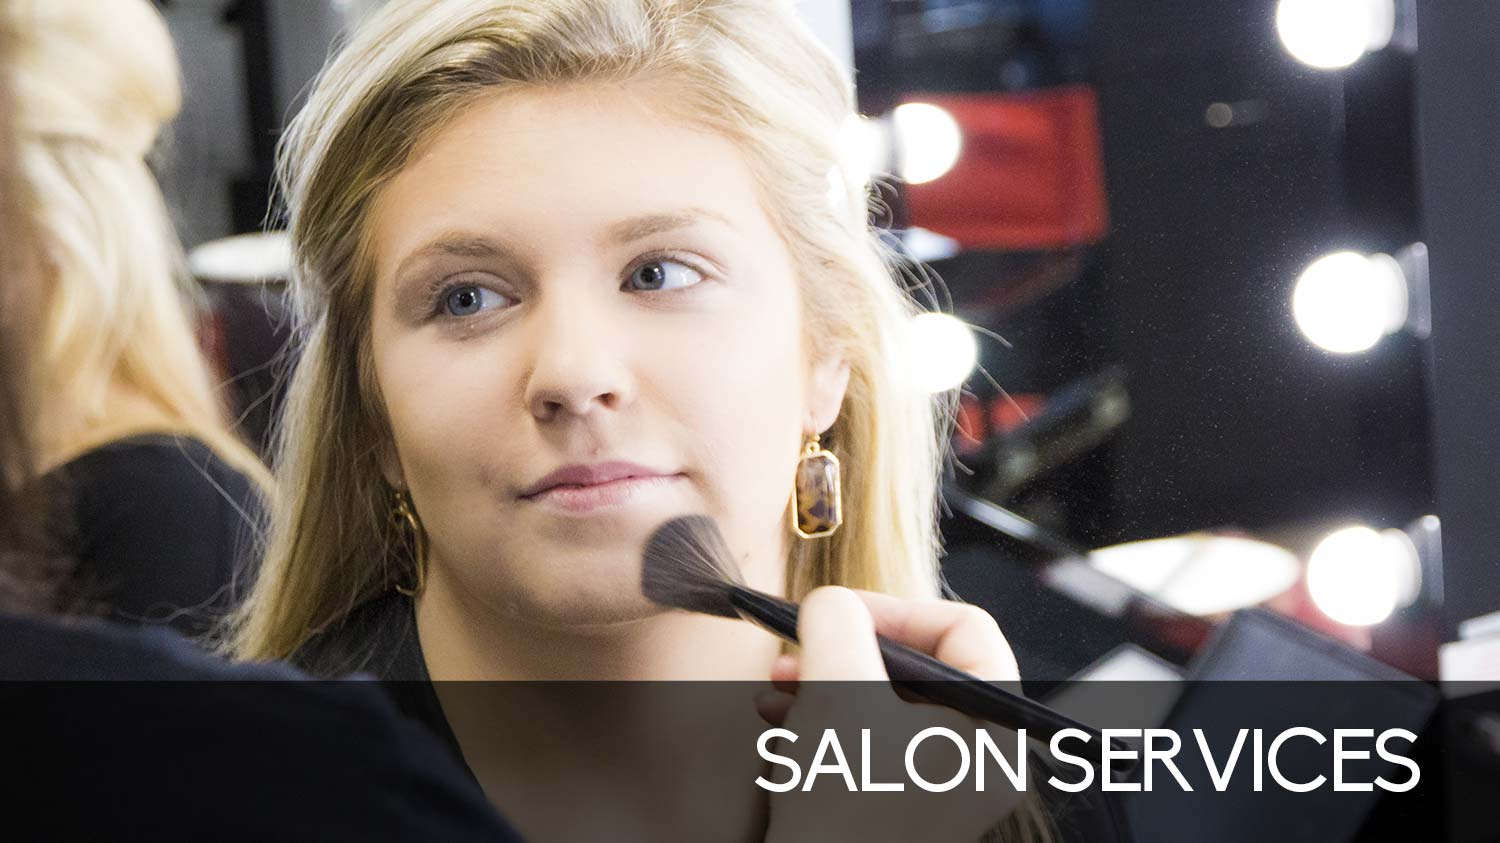 Trend Setters School of Cosmetology - Salon Services